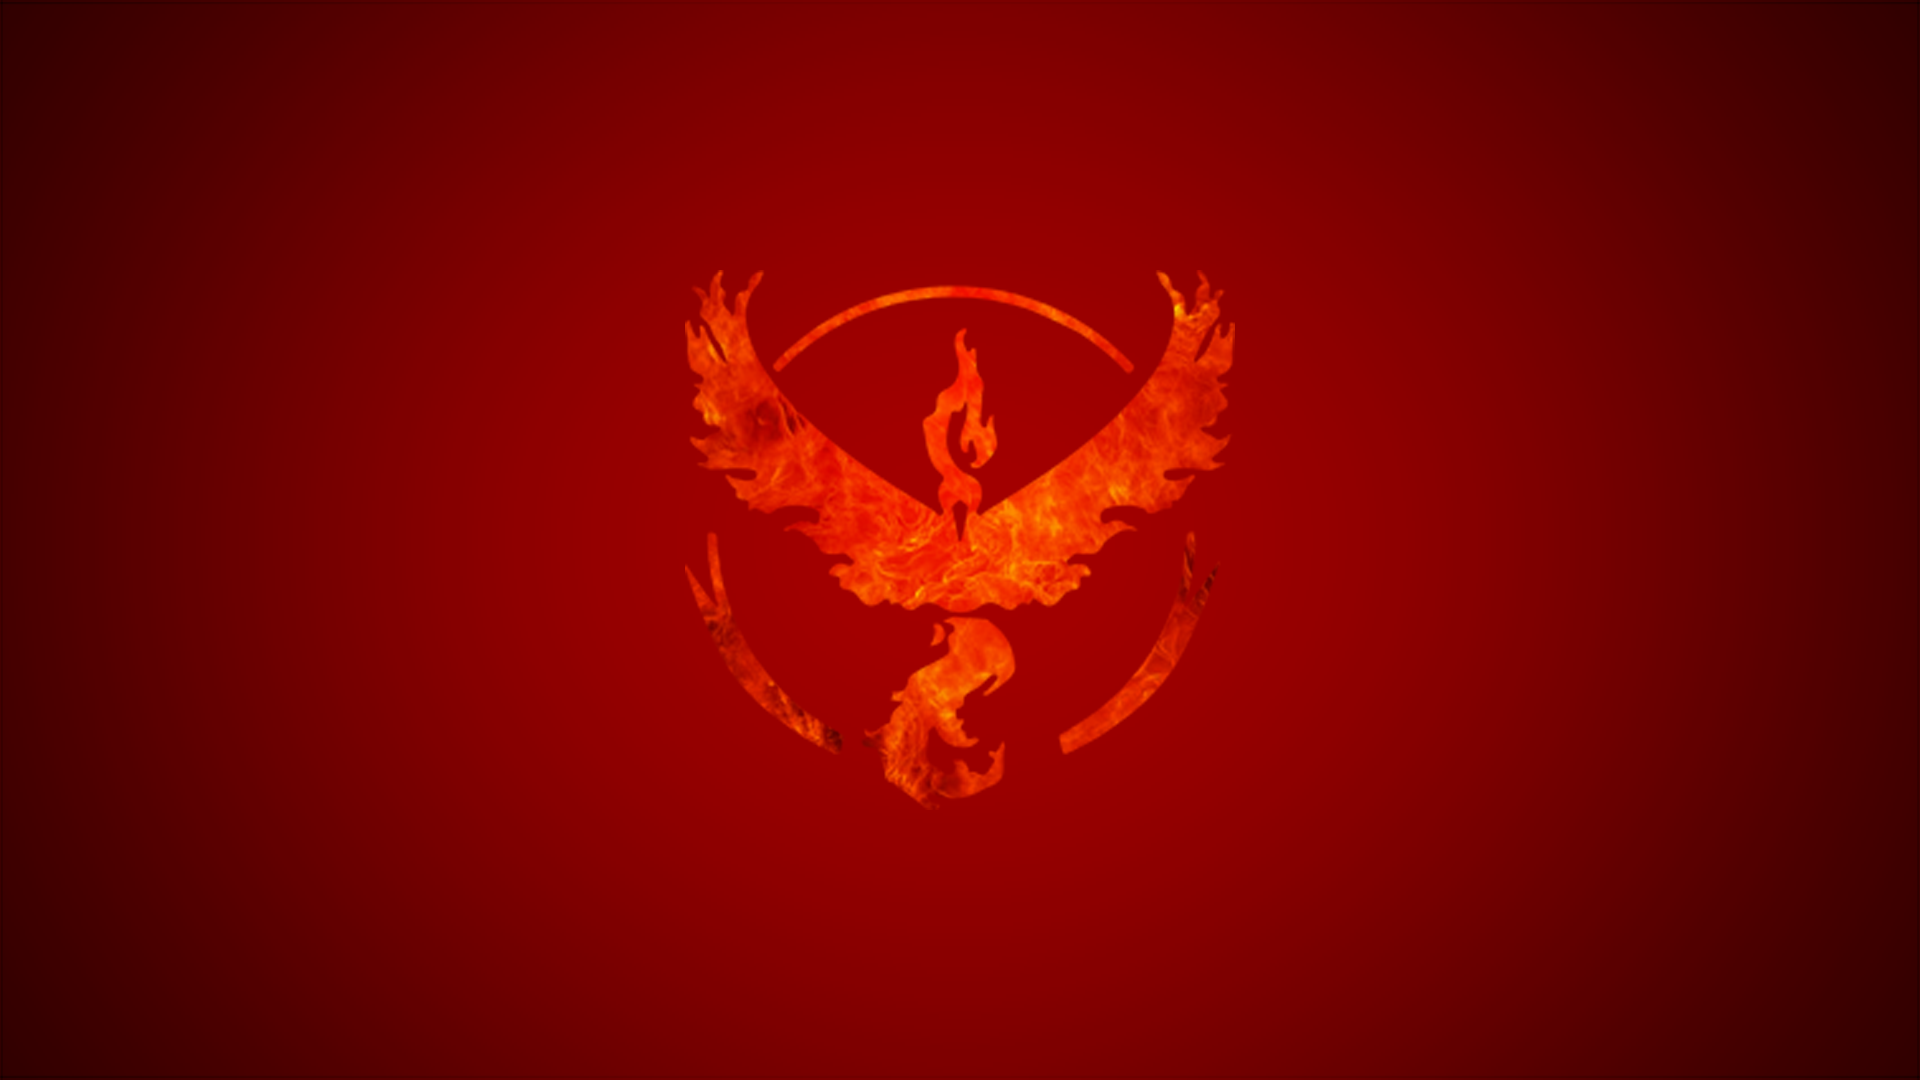 Pokemon Go Team Valor Wallpaper 54439 1920x1080px